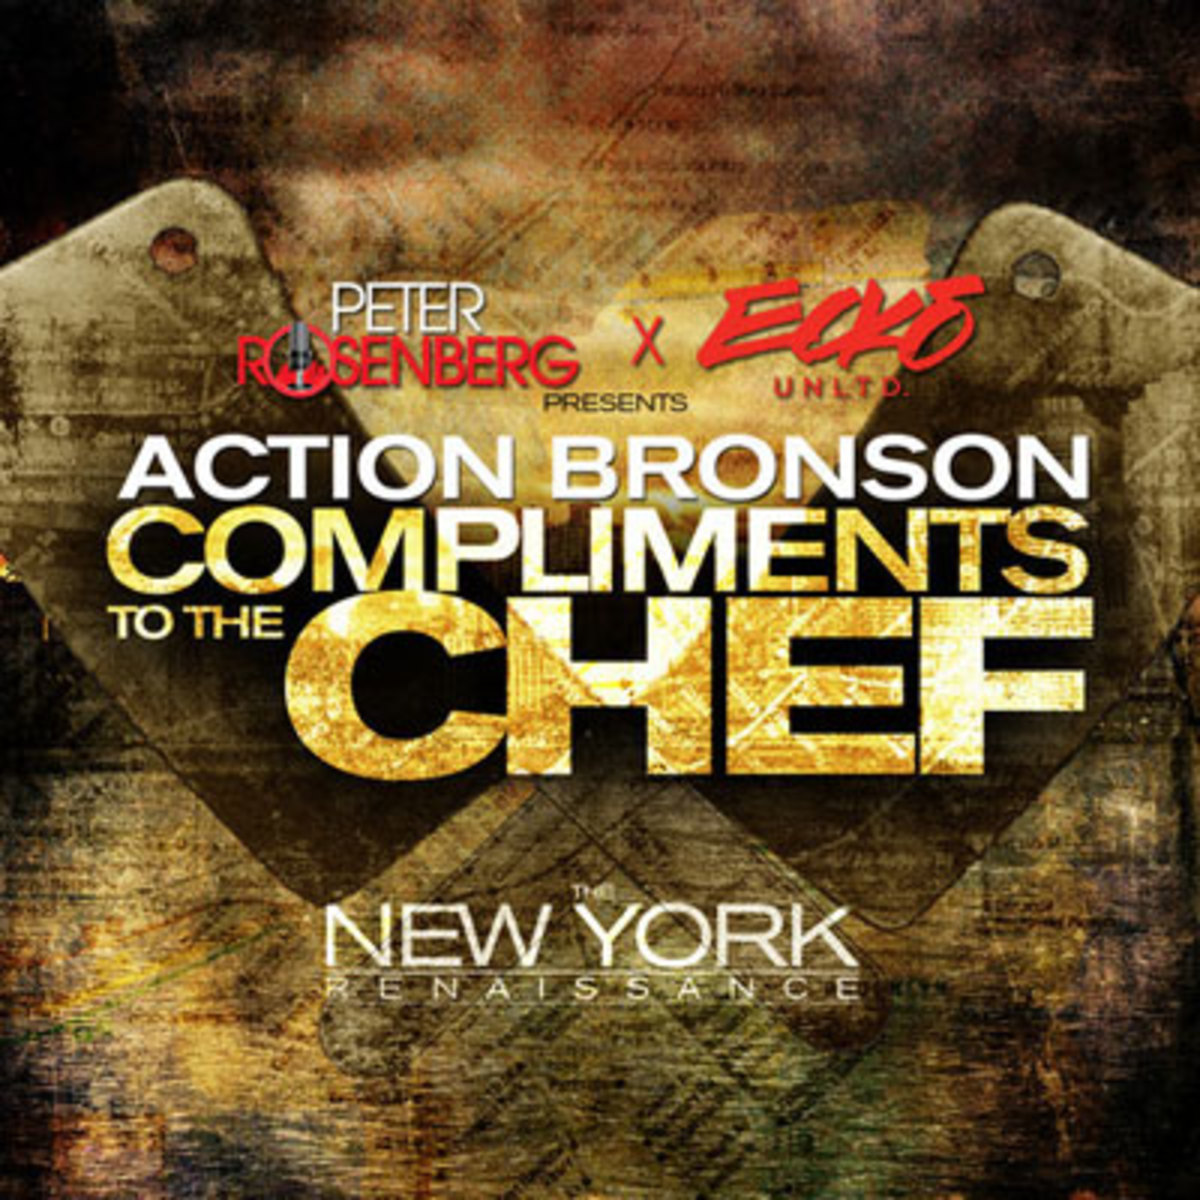 actionbronson-compliments.jpg